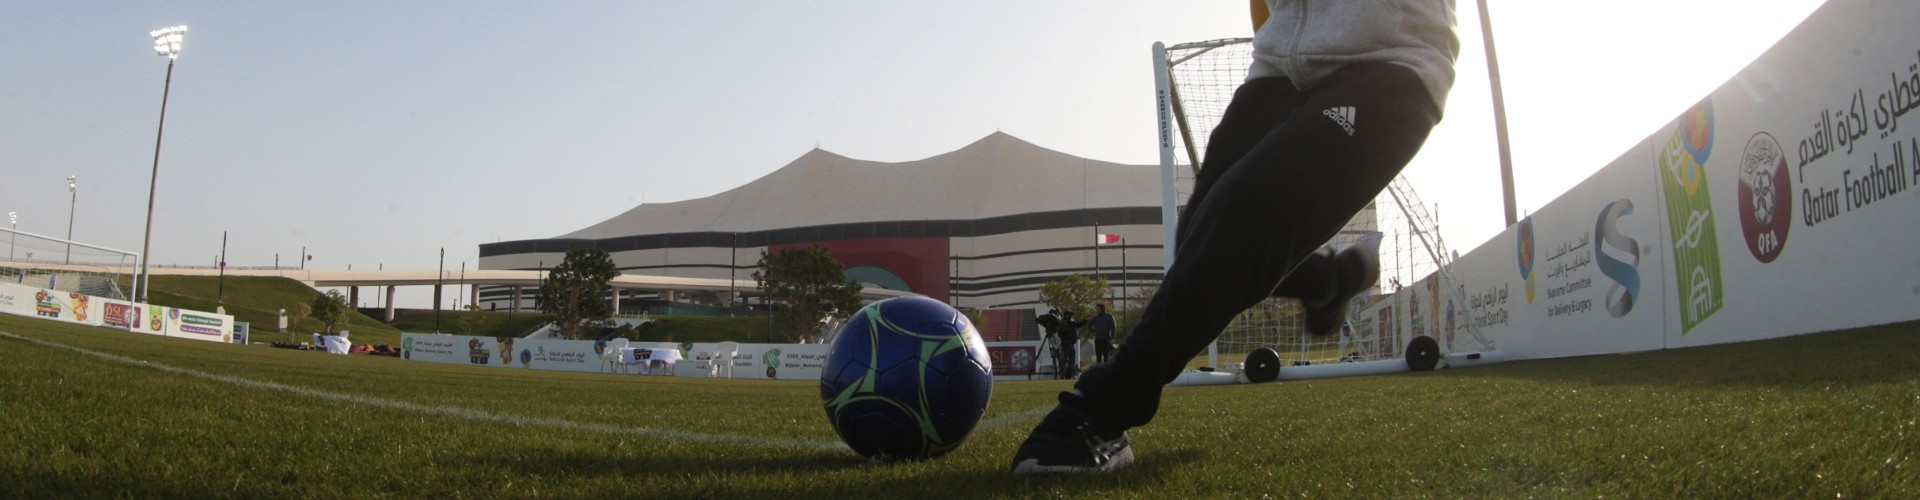 Al Bayt Park hosted special National Sports Day activities for the Qatar Football Family, including employees from the SC, Qatar Football Association and Qatar Stars League.